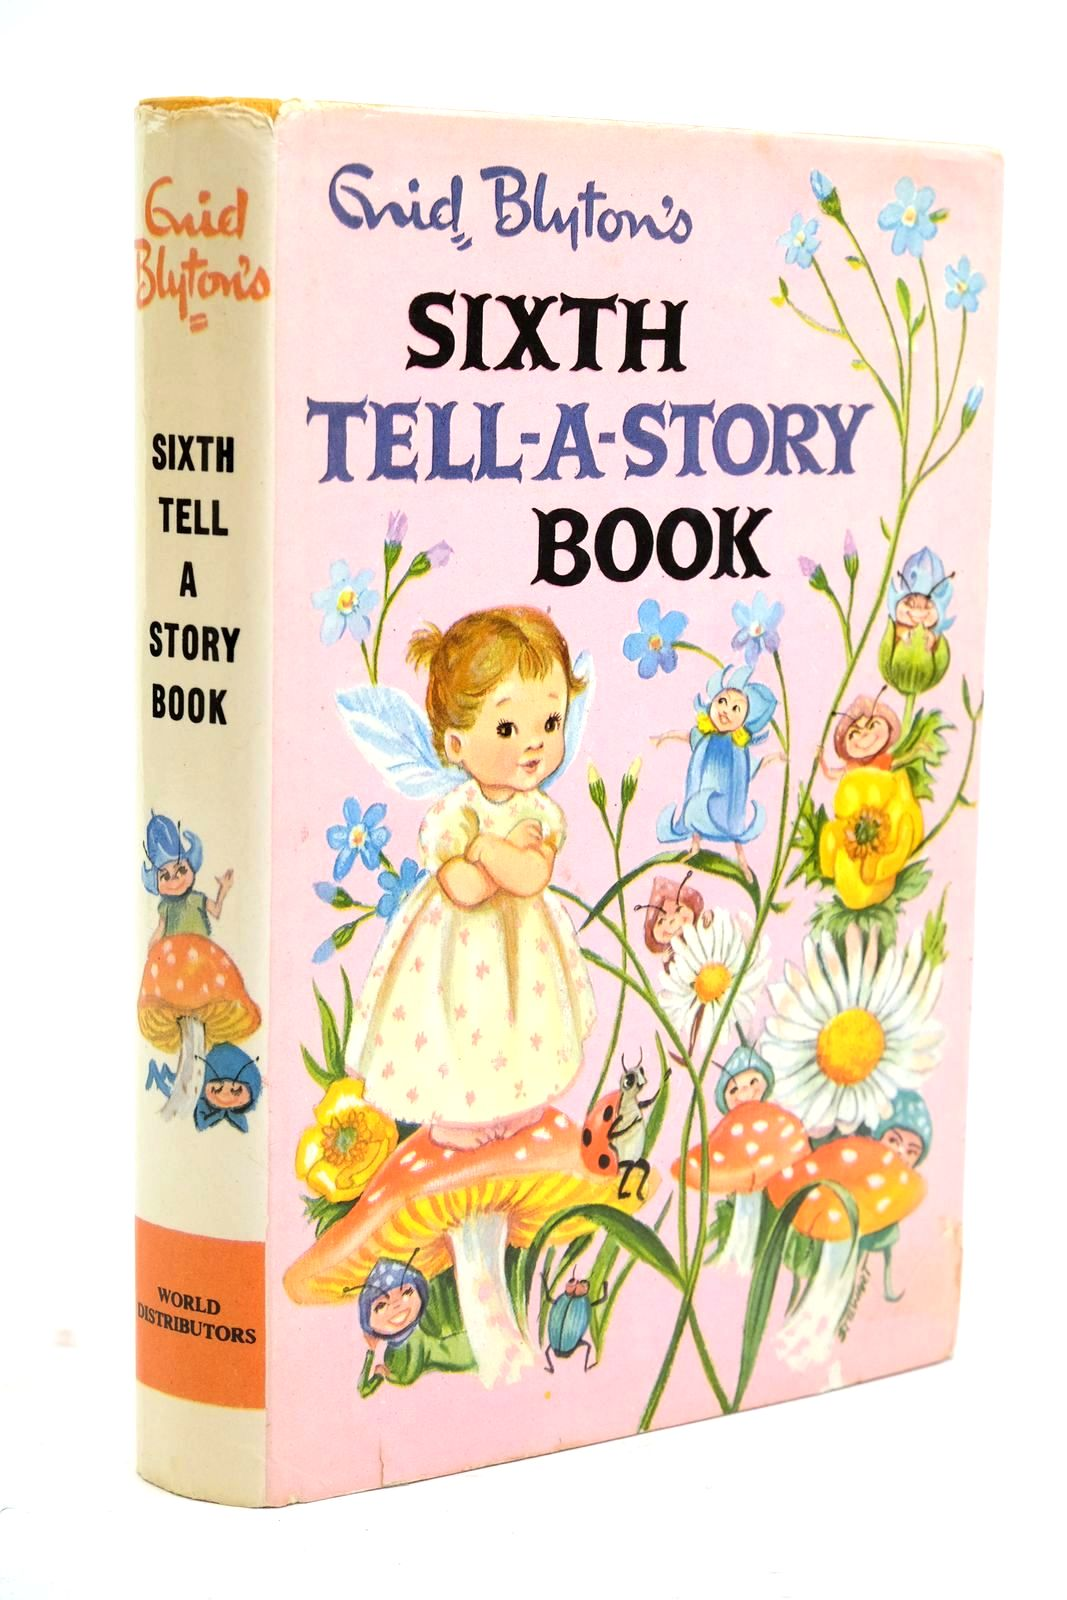 Photo of ENID BLYTON'S SIXTH TELL-A-STORY BOOK written by Blyton, Enid published by World Distributors Ltd. (STOCK CODE: 1321088)  for sale by Stella & Rose's Books